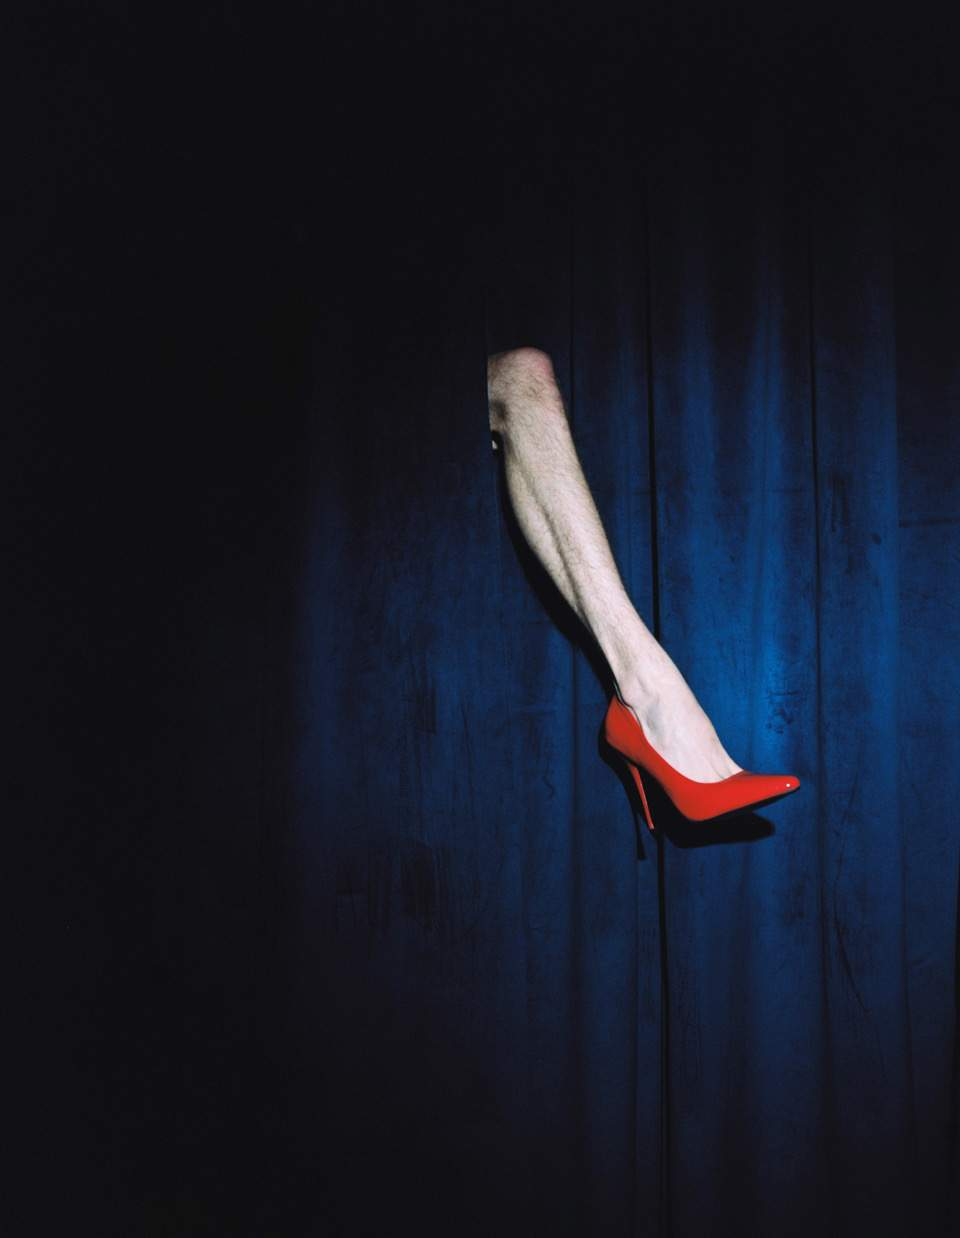 The image is of a leg coming through a blue curtain wearing a red stiletto heel.